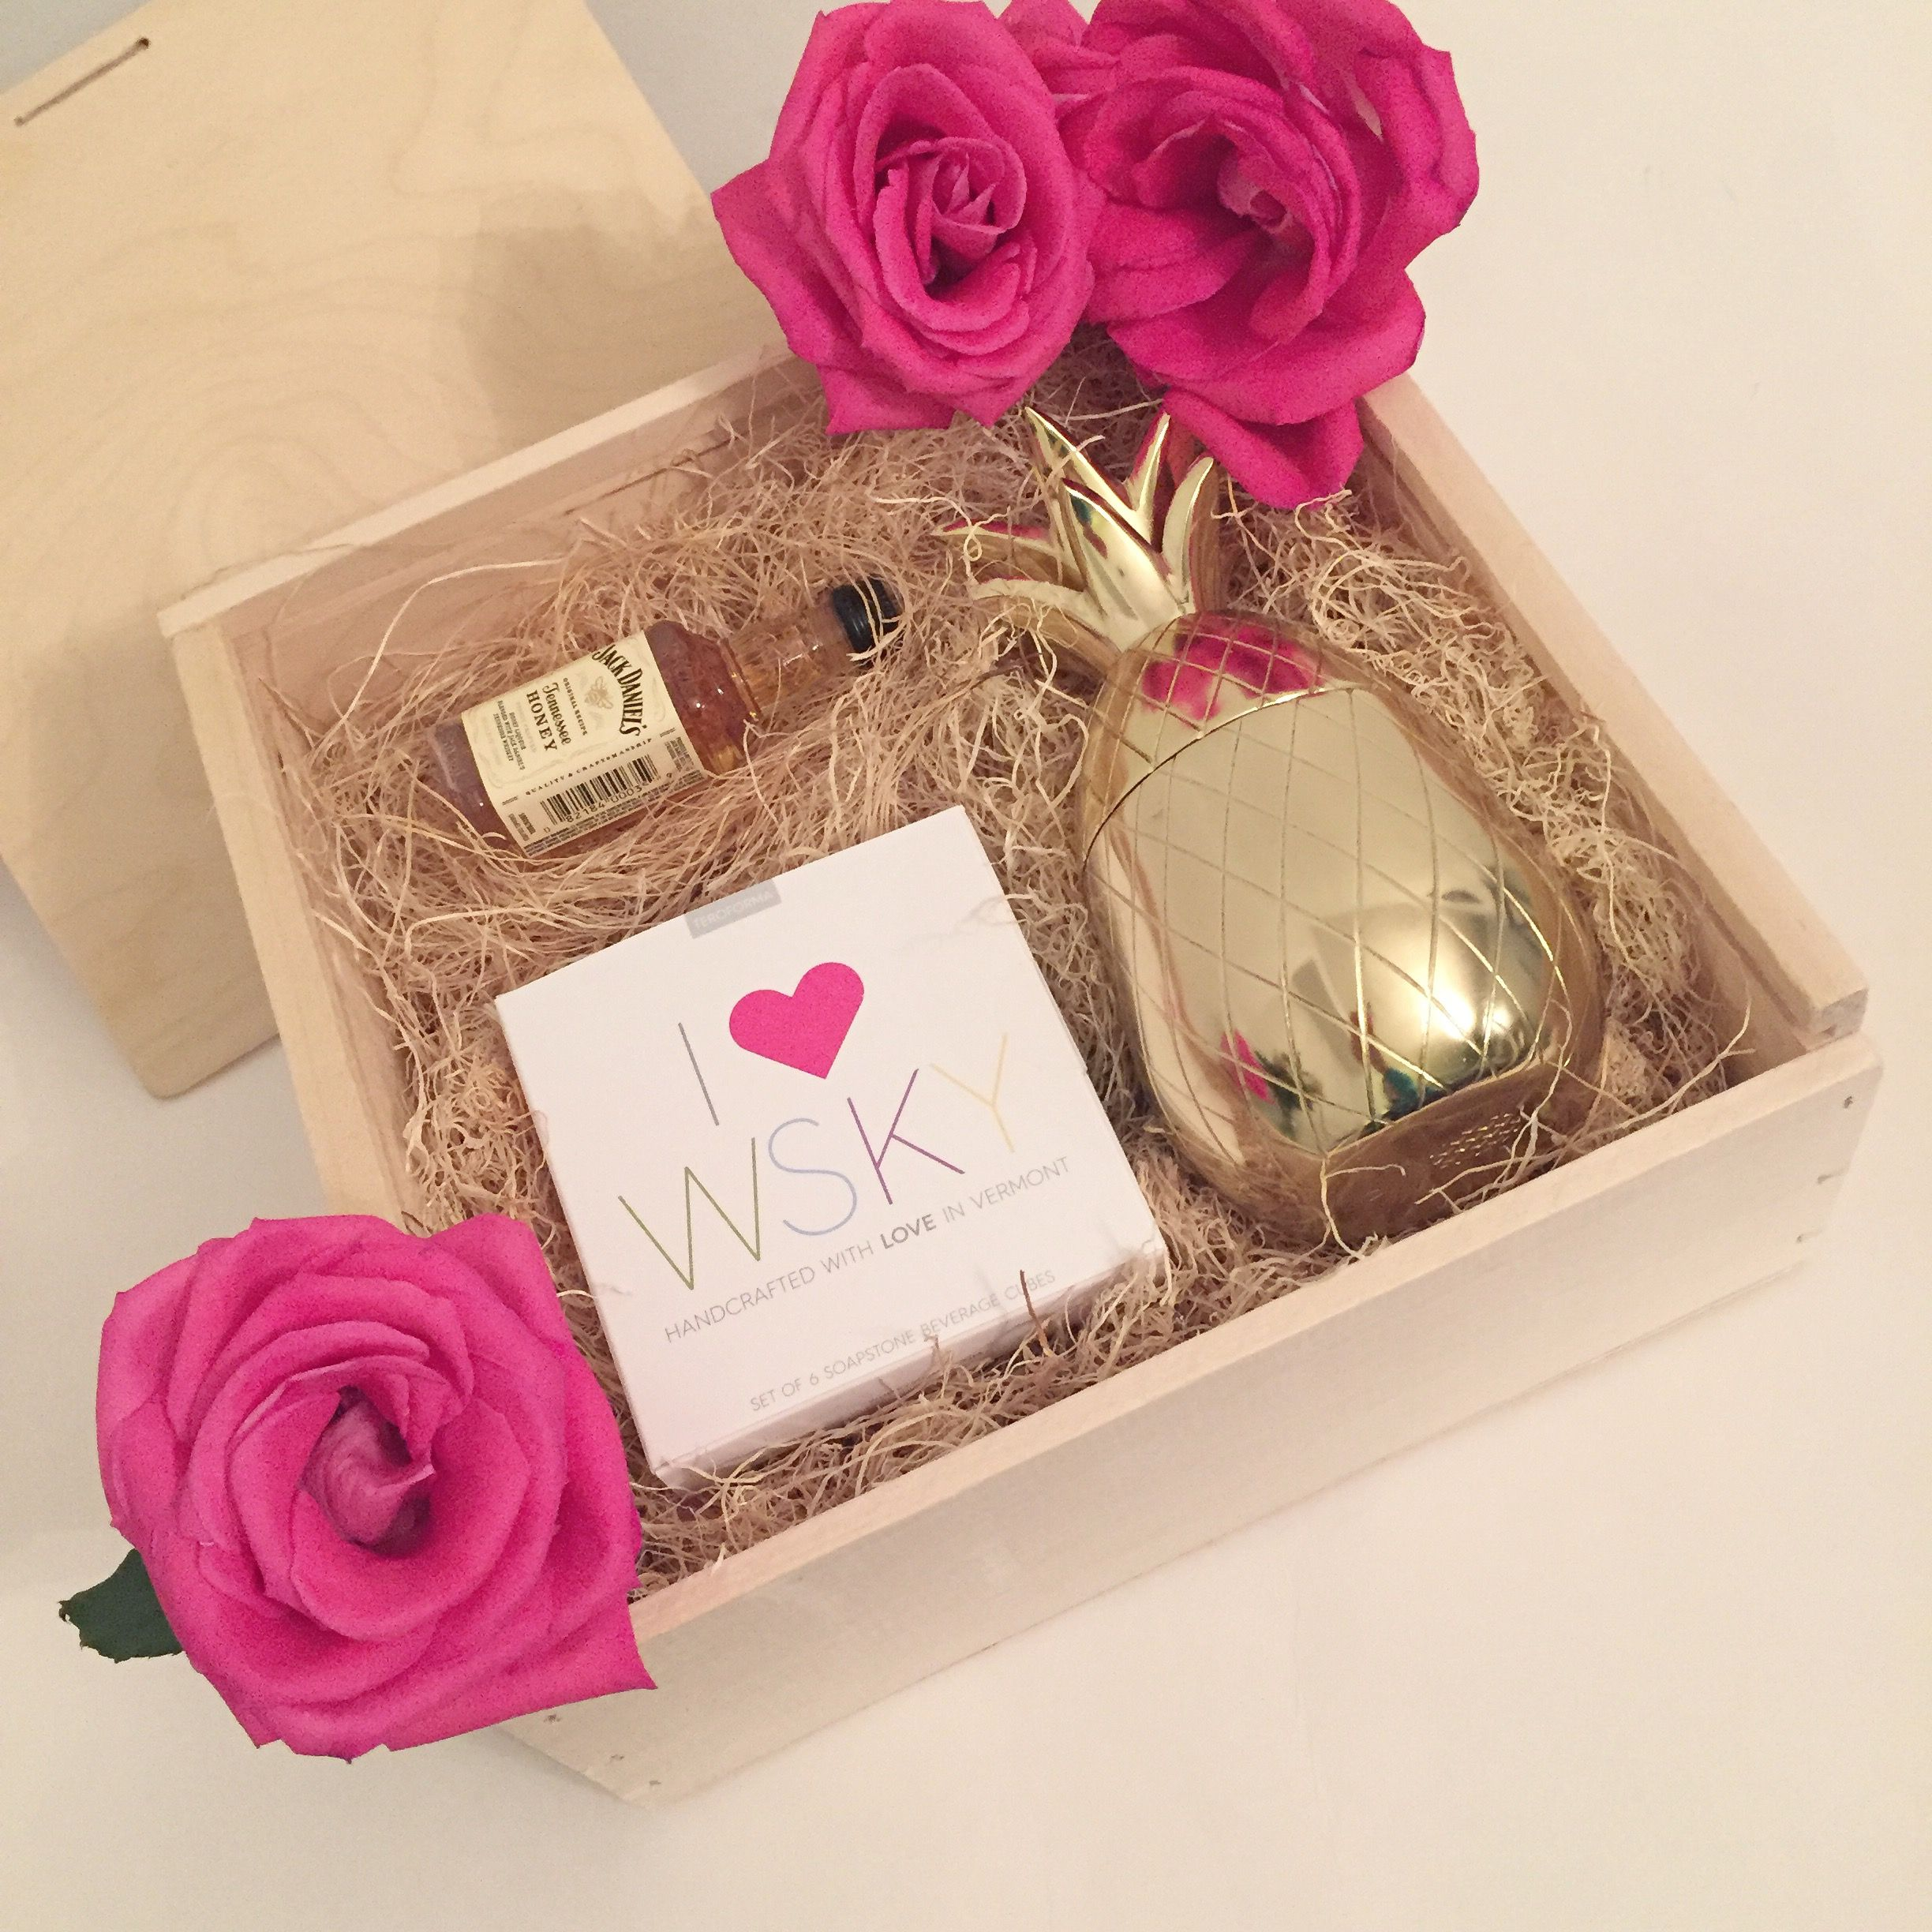 Themed Gift Box Ideas : Custom whiskey themed corporate gift box gifts for her